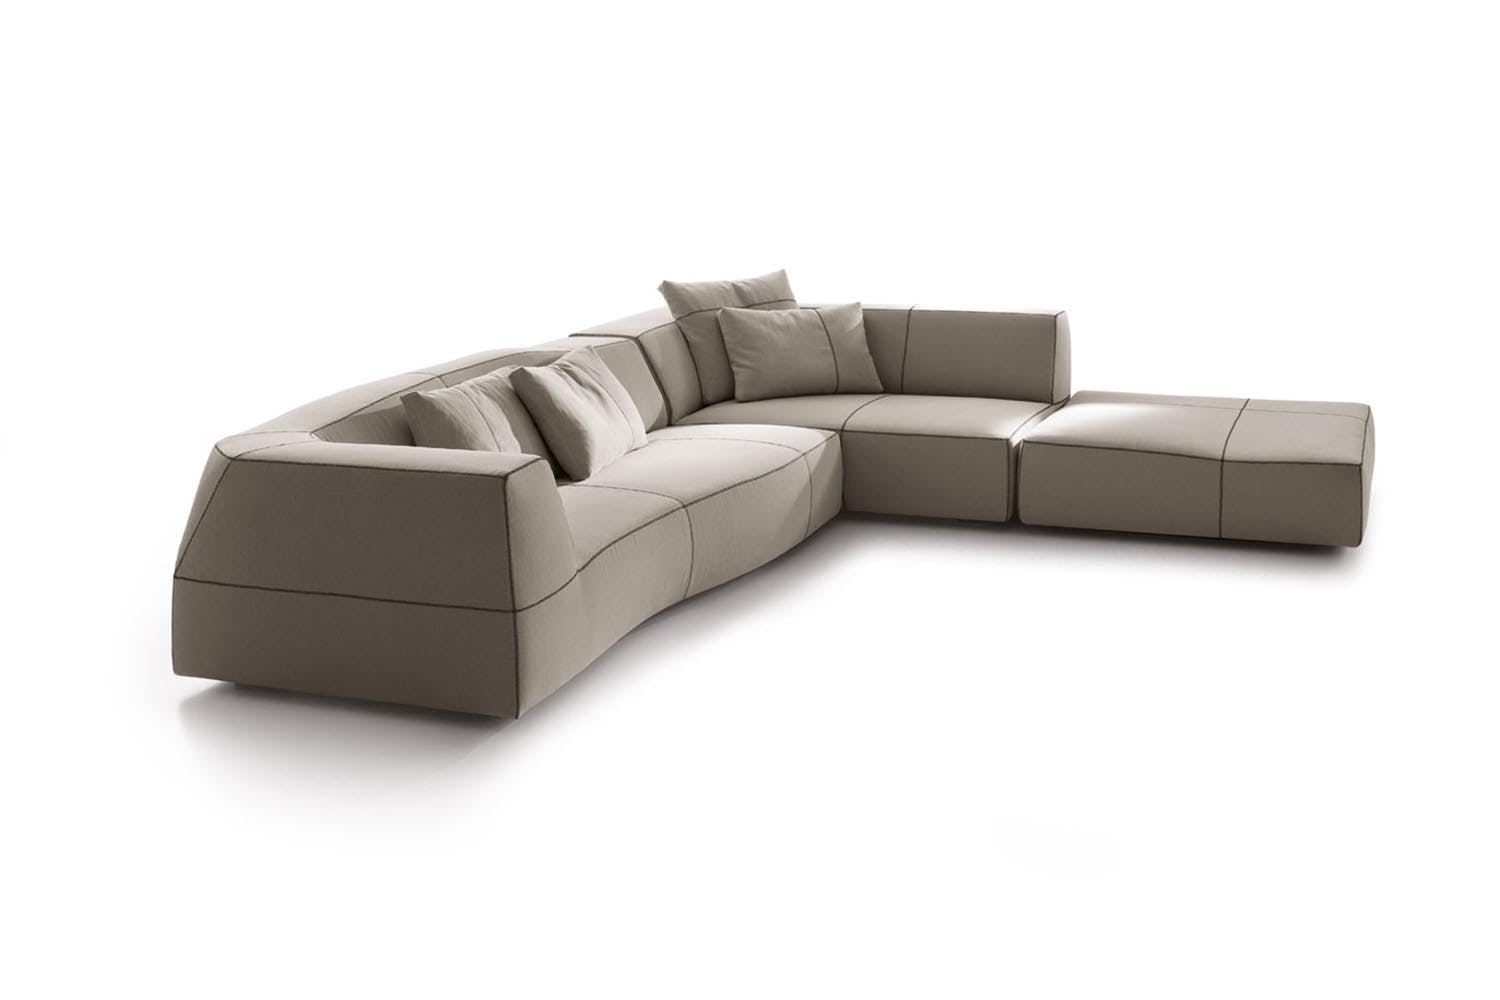 bend sofa by patricia urquiola for bb italia bb italy furniture